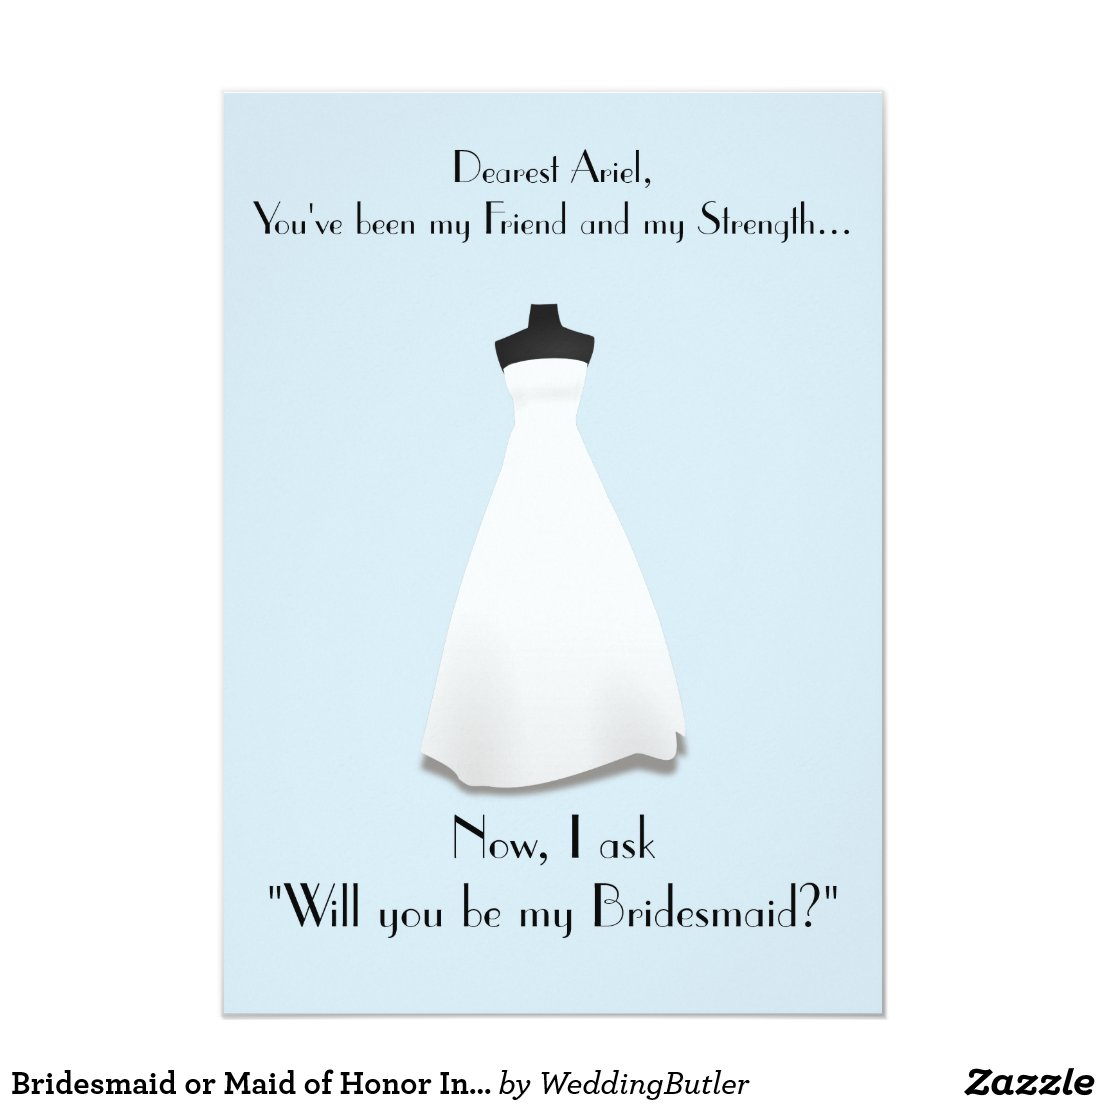 Bridesmaid or Maid of Honor Invitation